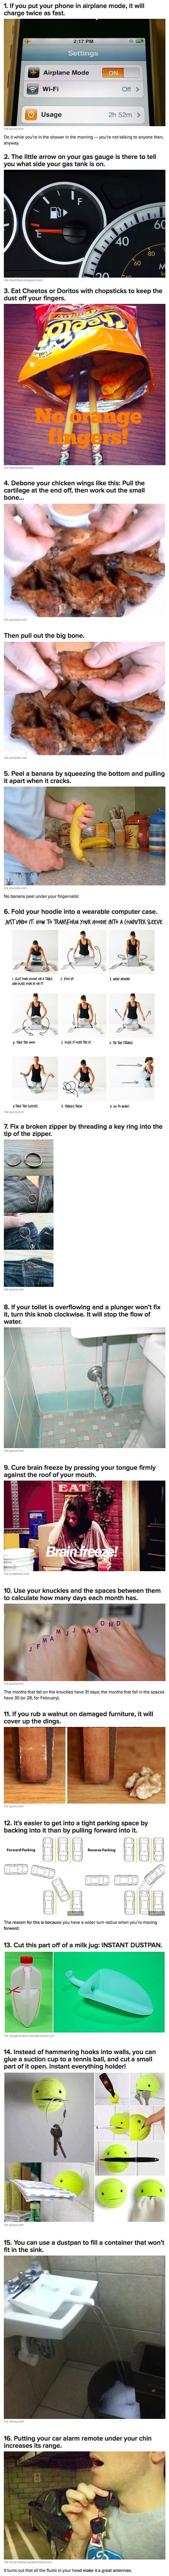 Here Are Some Extremely Simple Life Hacks That Will Make Your Life